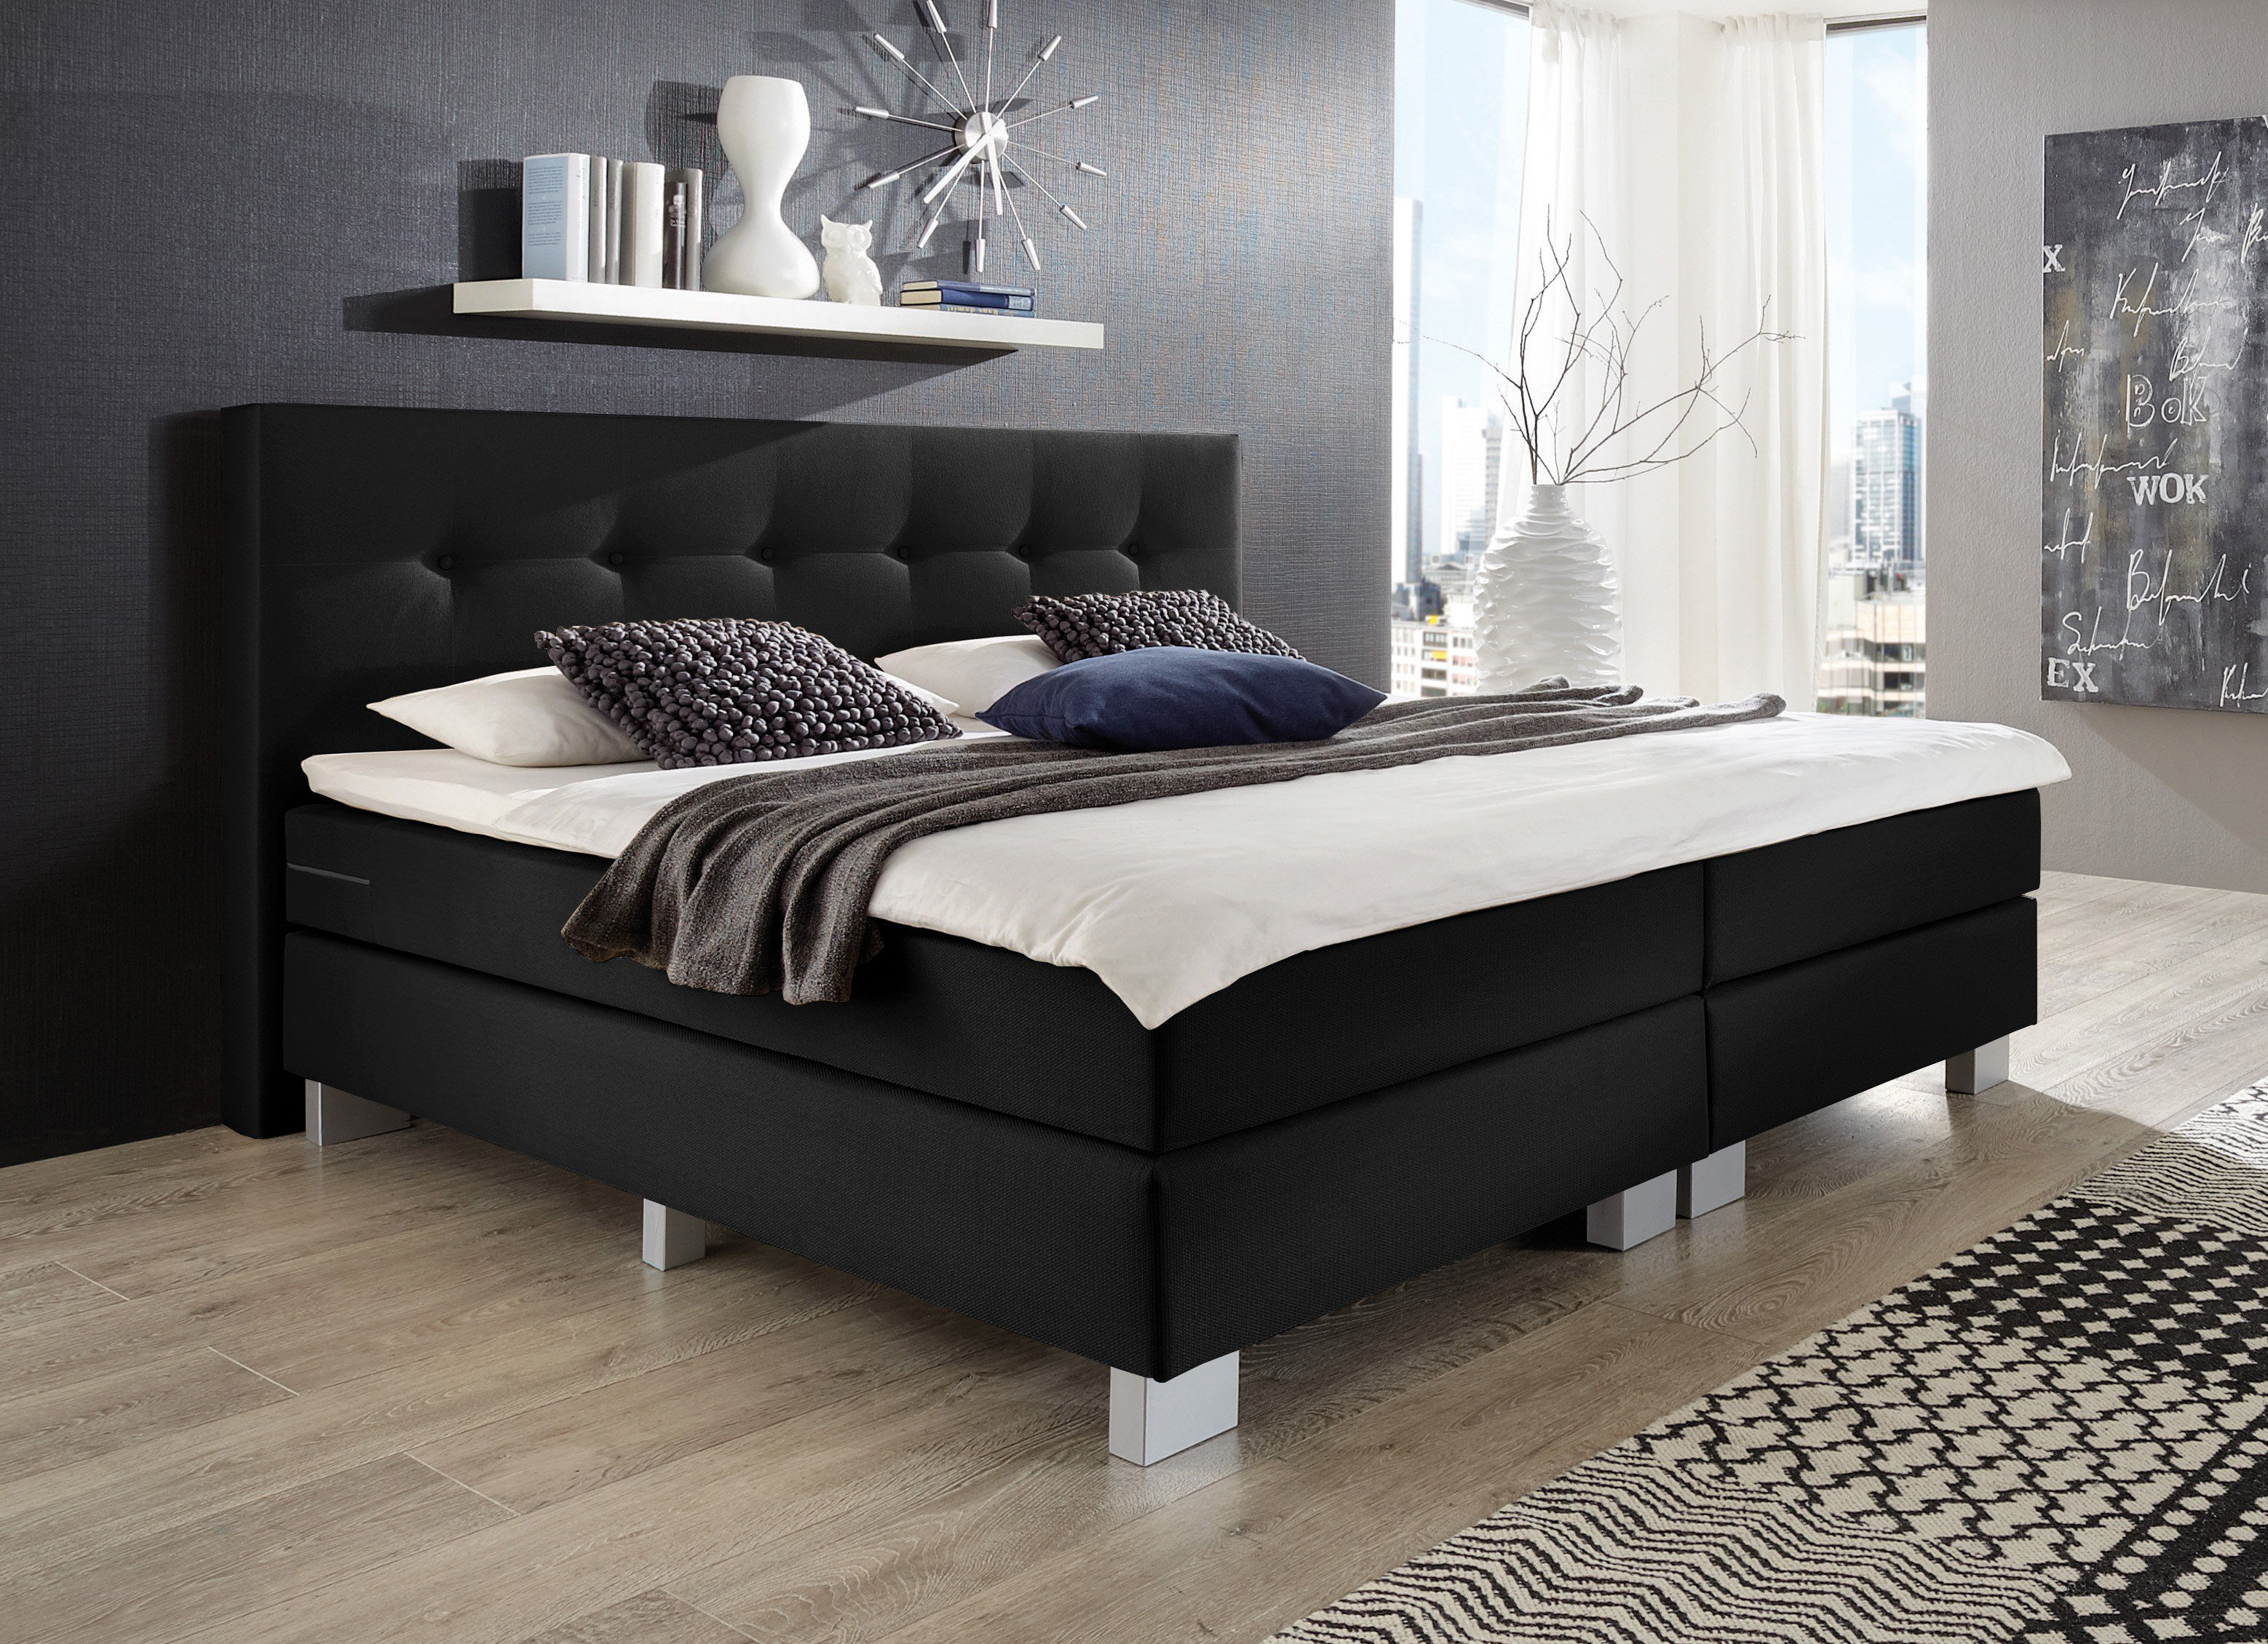 napco boxspringbett schwarz modell allround m bel letz. Black Bedroom Furniture Sets. Home Design Ideas